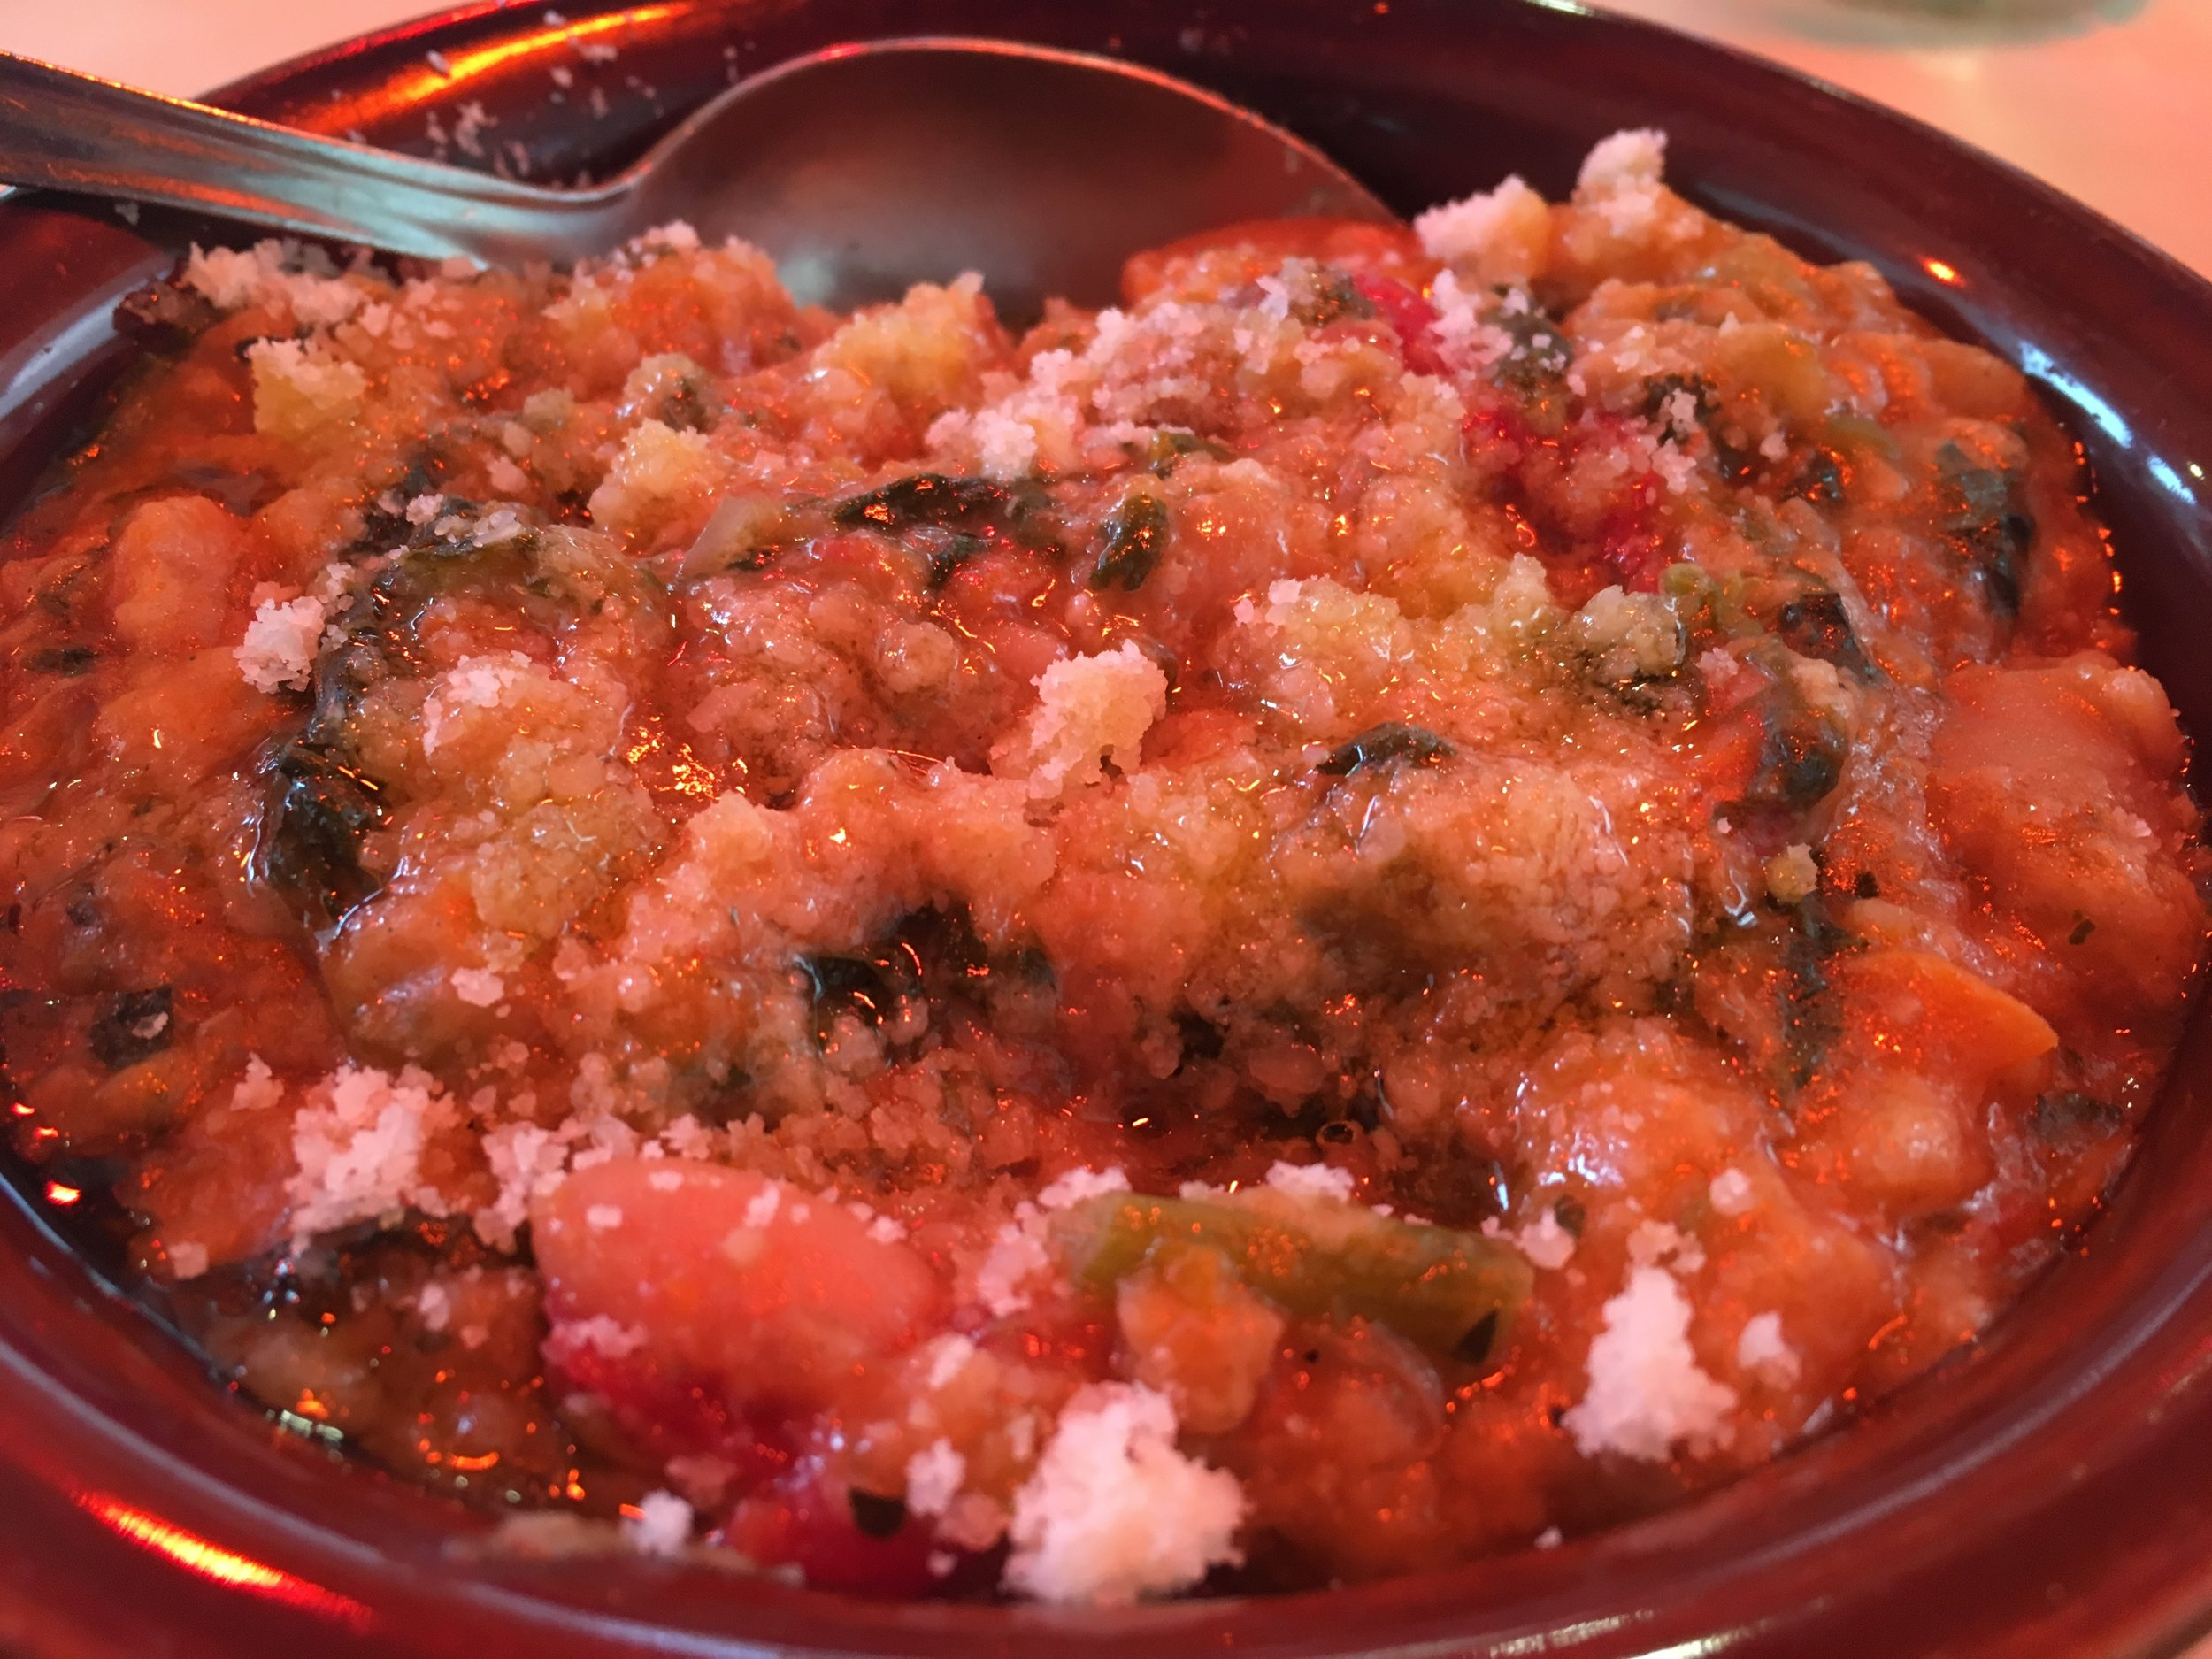 This ribollita looked good but was way too salty